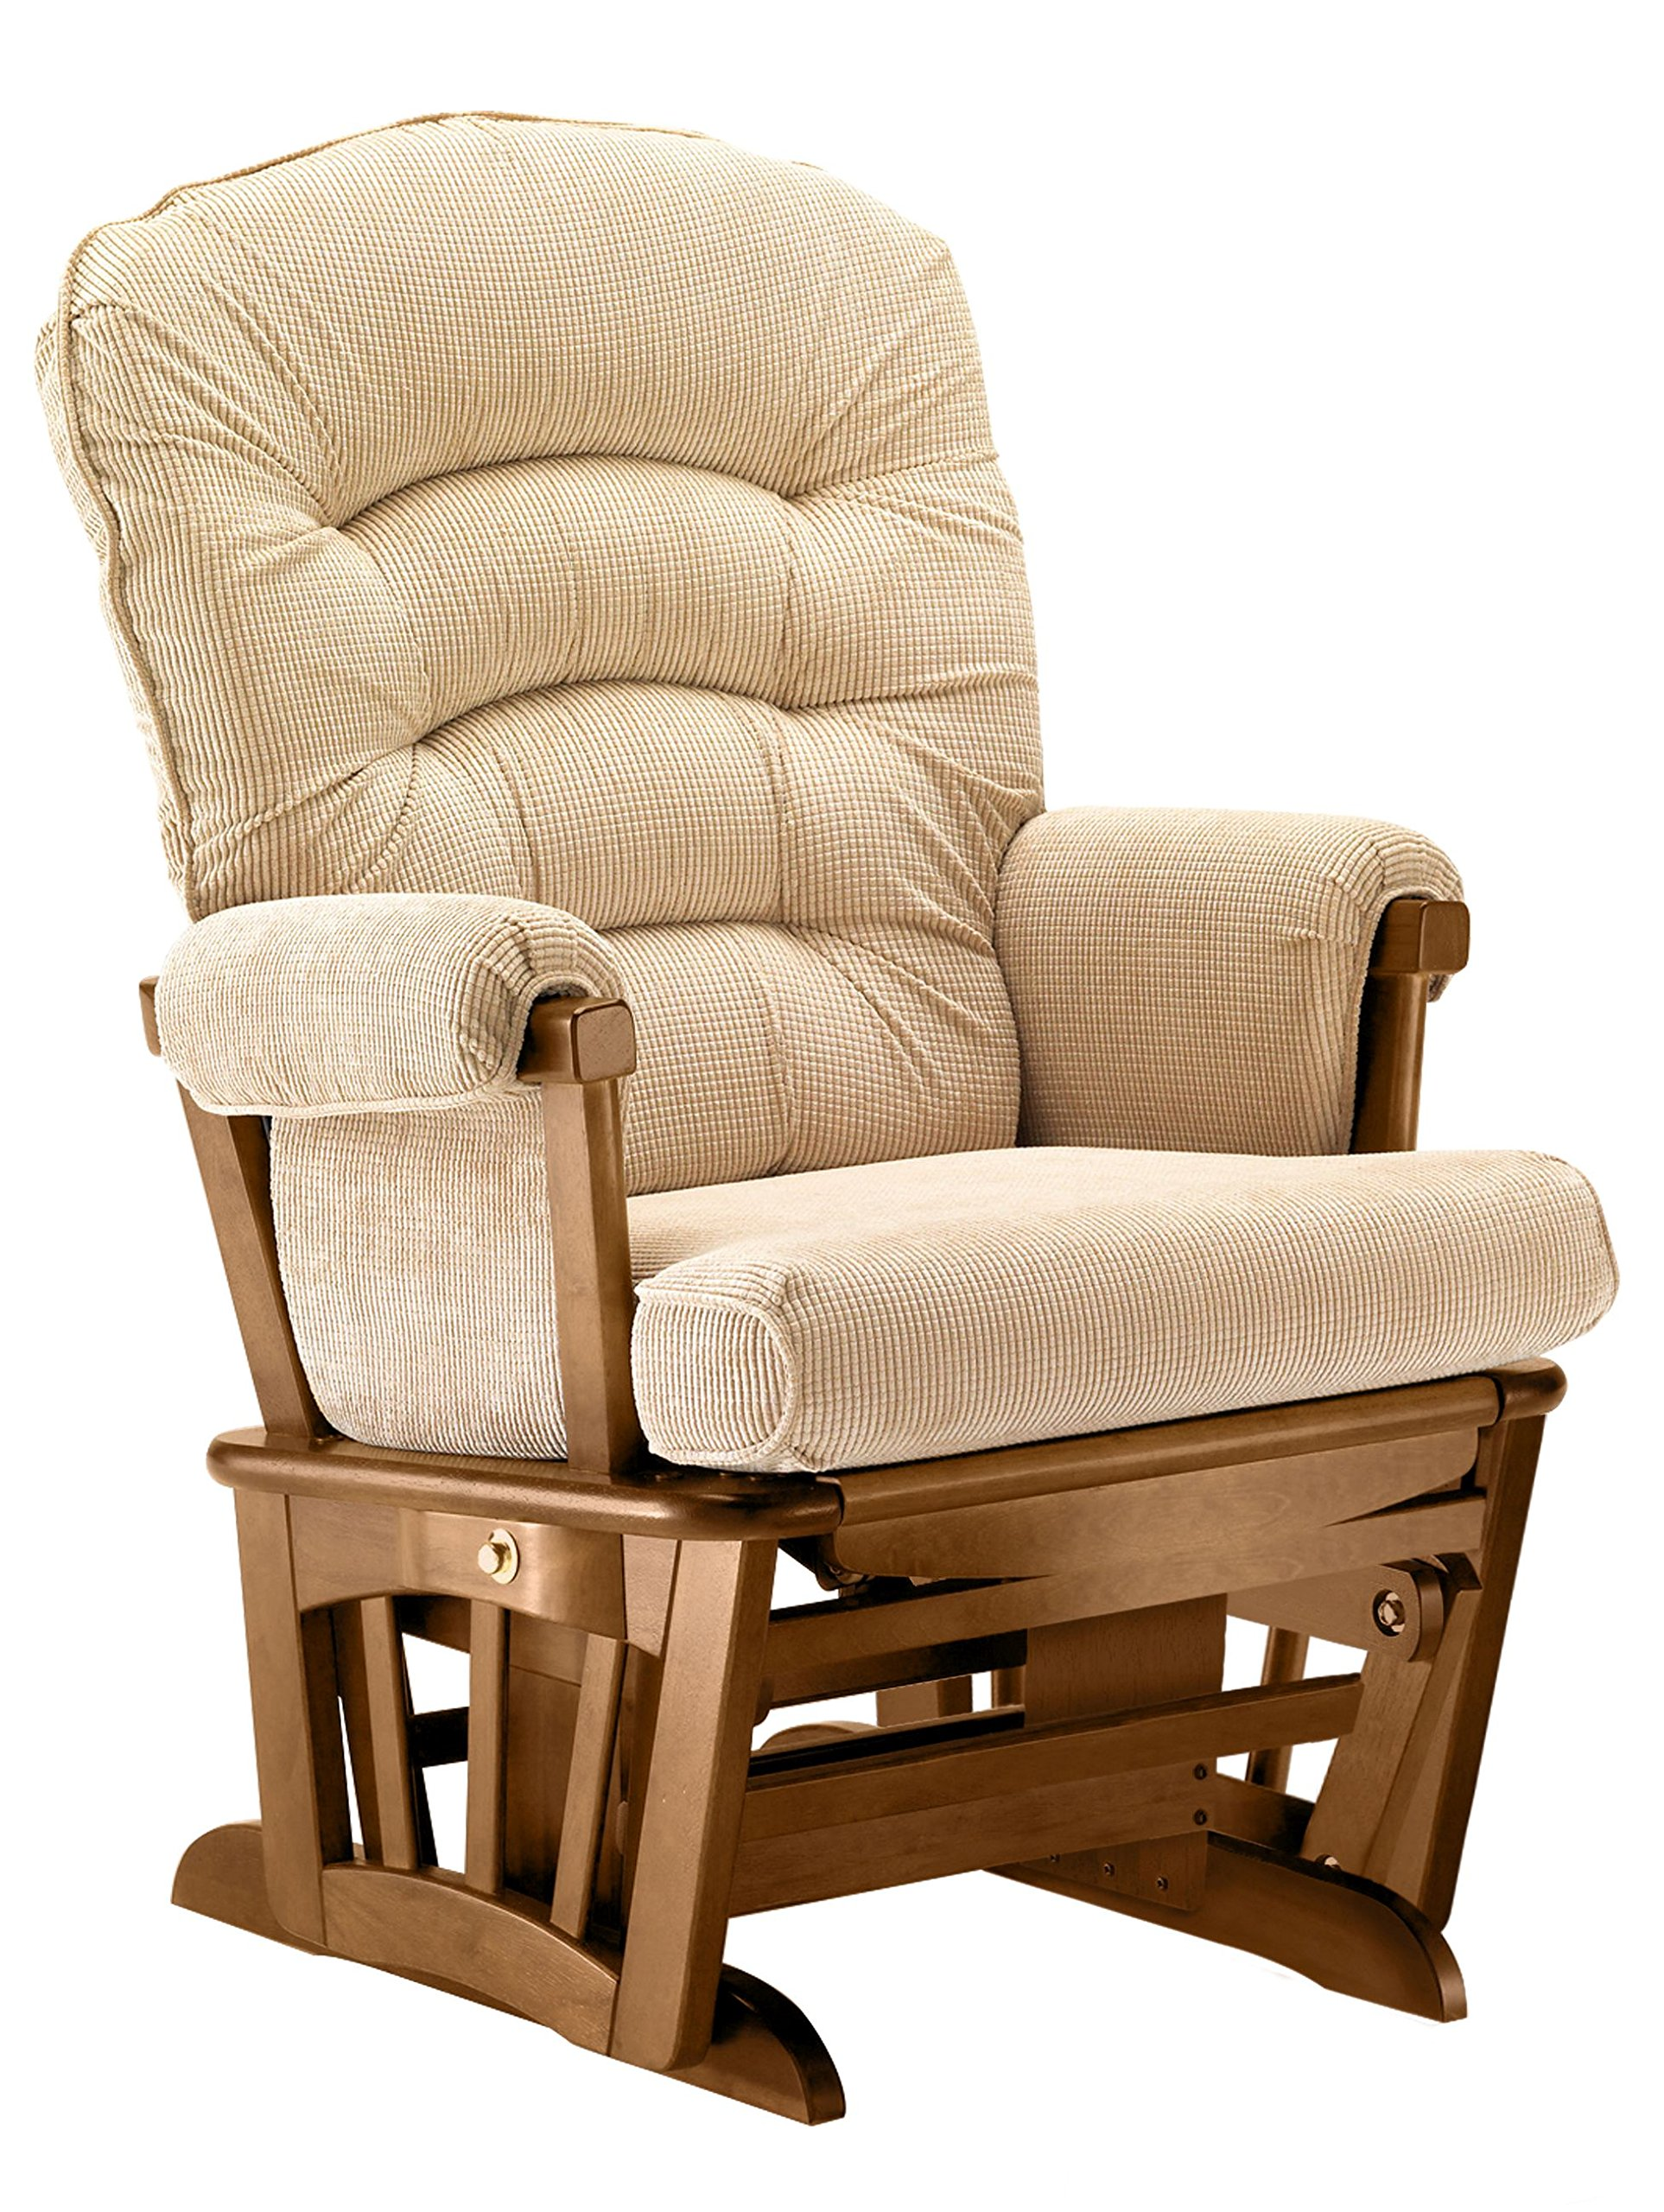 Shermag Extra-wide Glider Recliner multi-features chair, Chestnut/Galaxy Camel